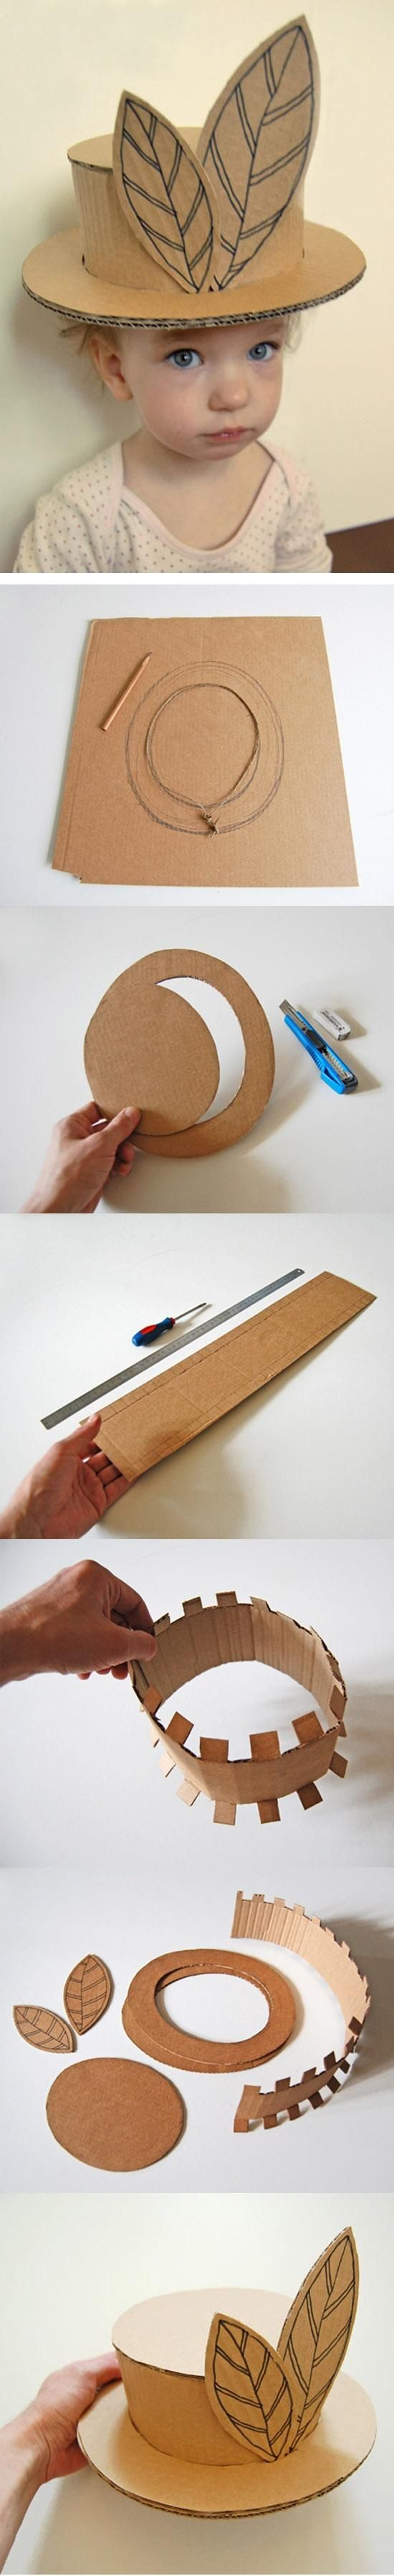 DIY :: cardboard hat ( Measure the circumference of the head with string... www.playandgrow.r... )